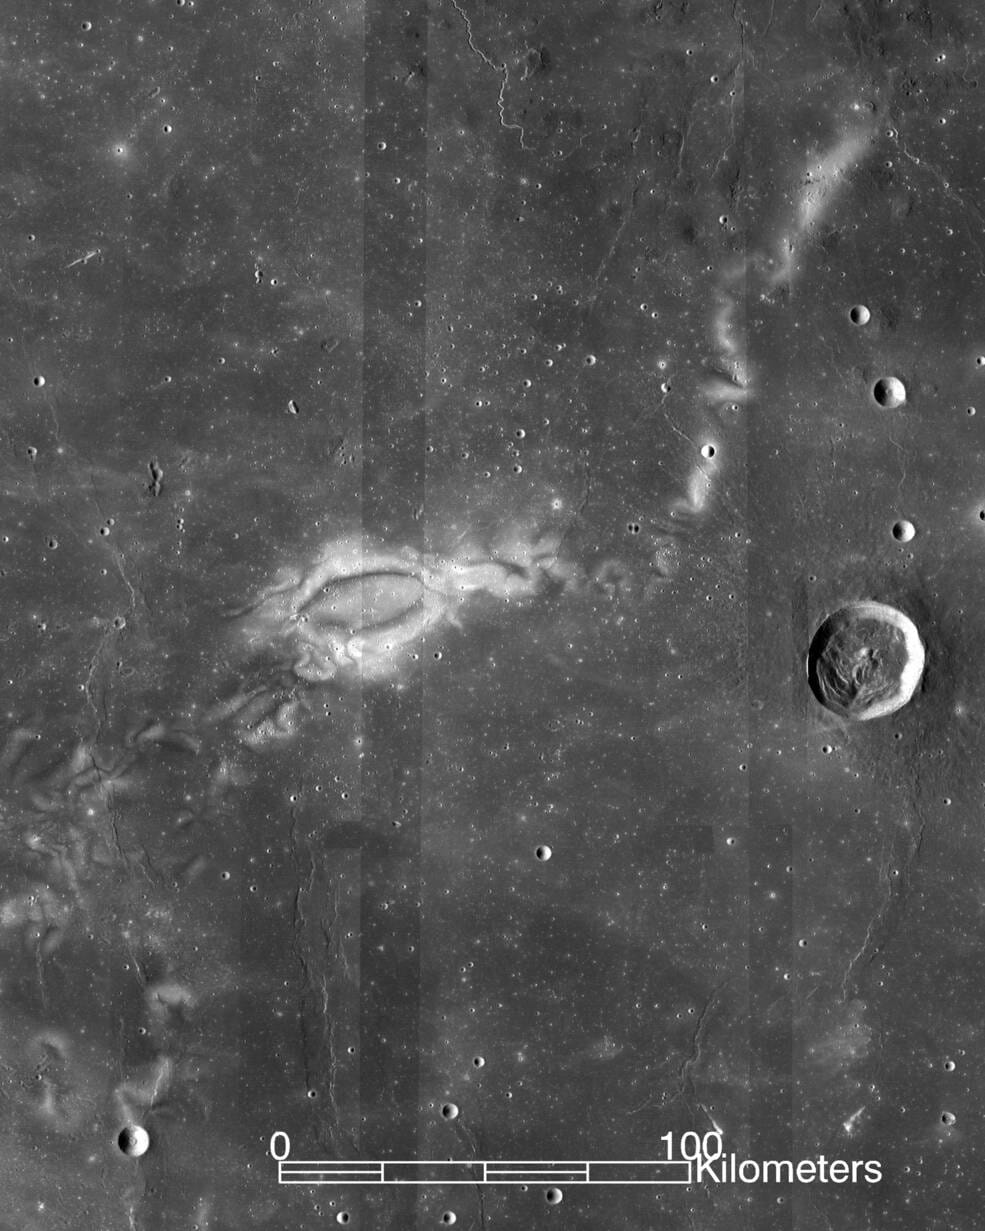 Lunar Swirls Point to the Moon's Volcanic Magnetic Past